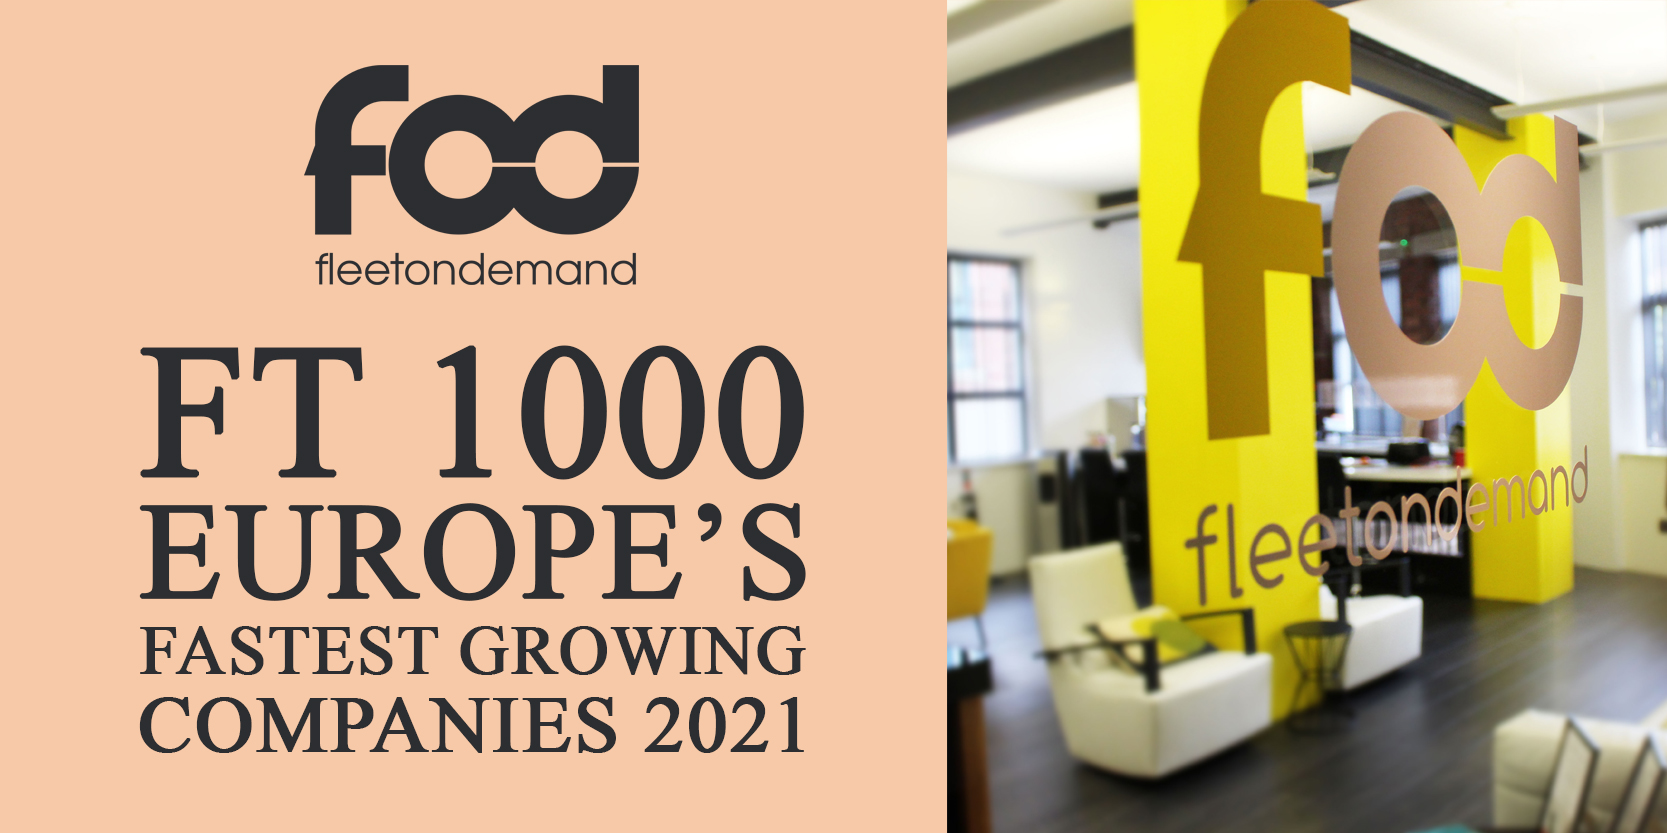 Fleetondemand recognised in FT 1000 as one of Europe's Fastest Growing Companies